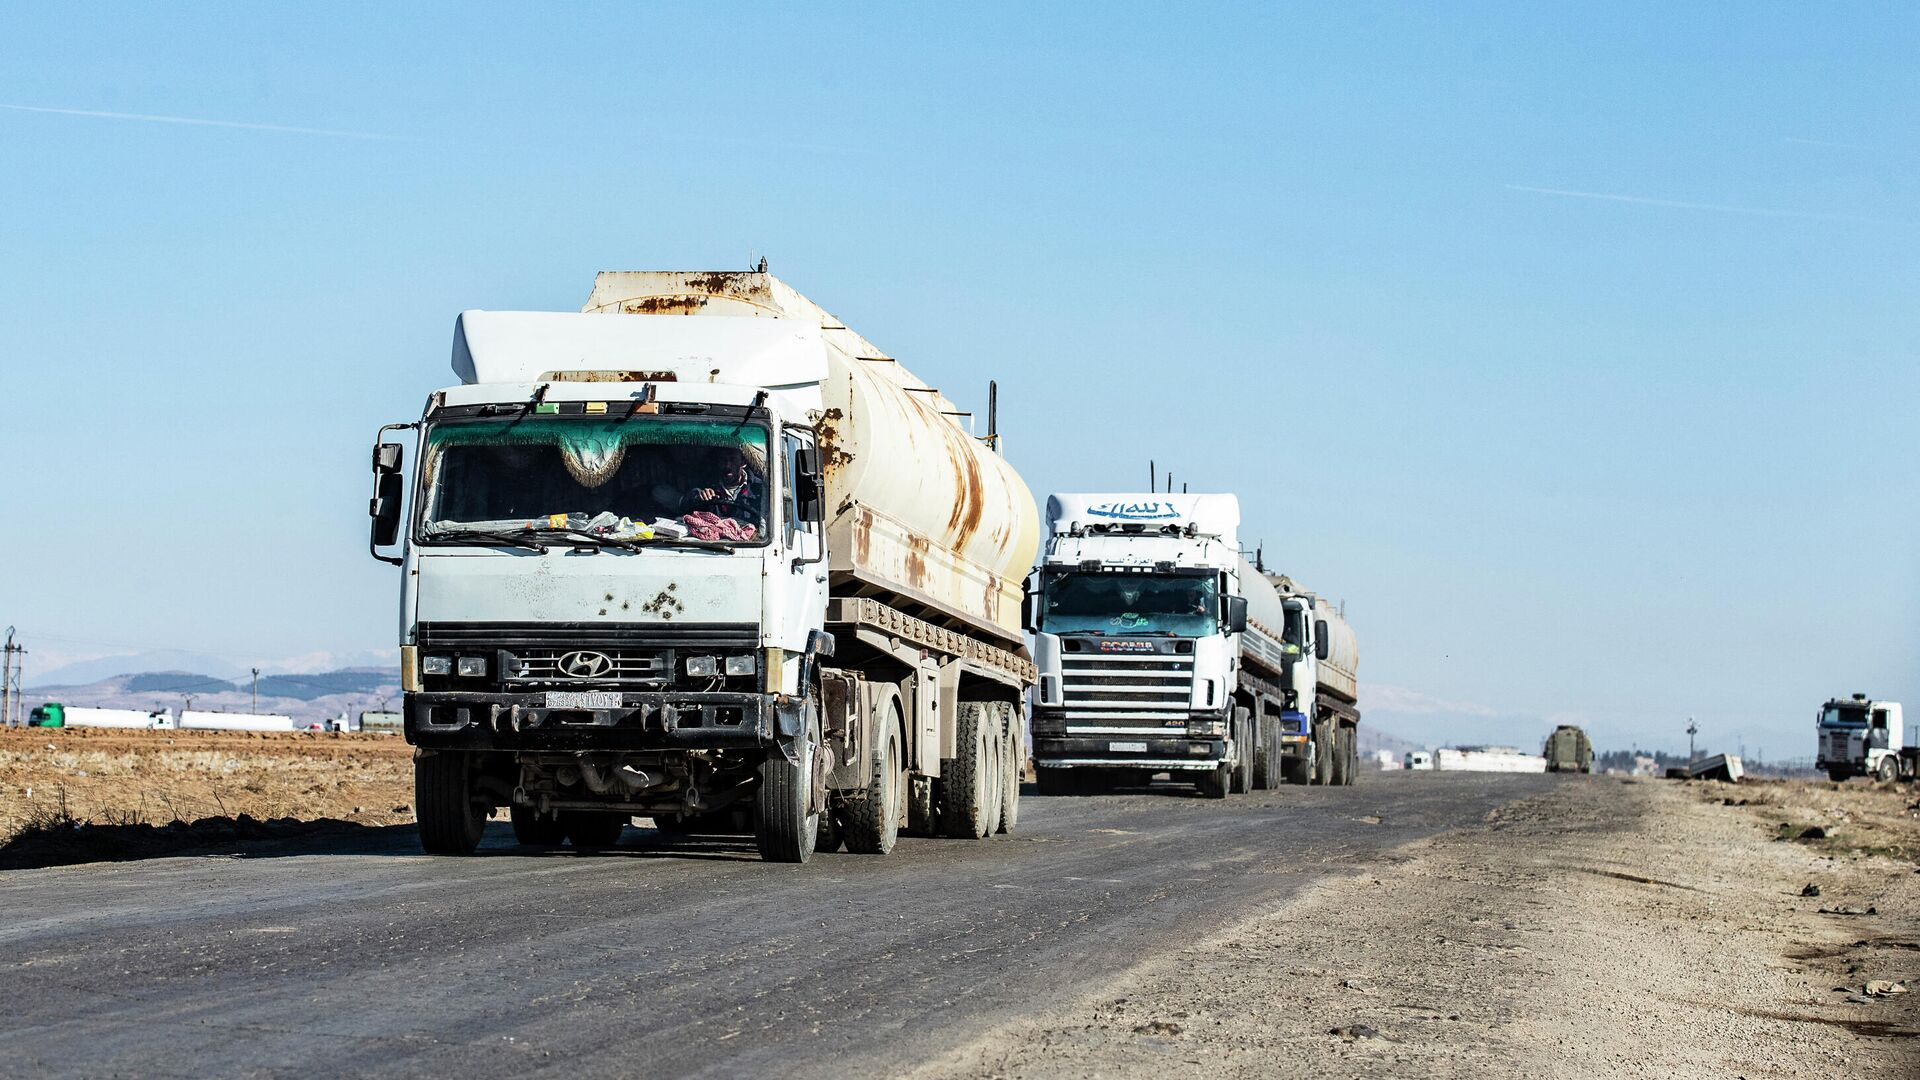 Tank trucks advance on a road at the Rumaylan (Rmeilan) oil fields in Syria's Kurdish-controlled northeastern Hasakeh province, on January 6, 2021, transporting the valuable resource to government-controlled areas - Sputnik International, 1920, 15.09.2021